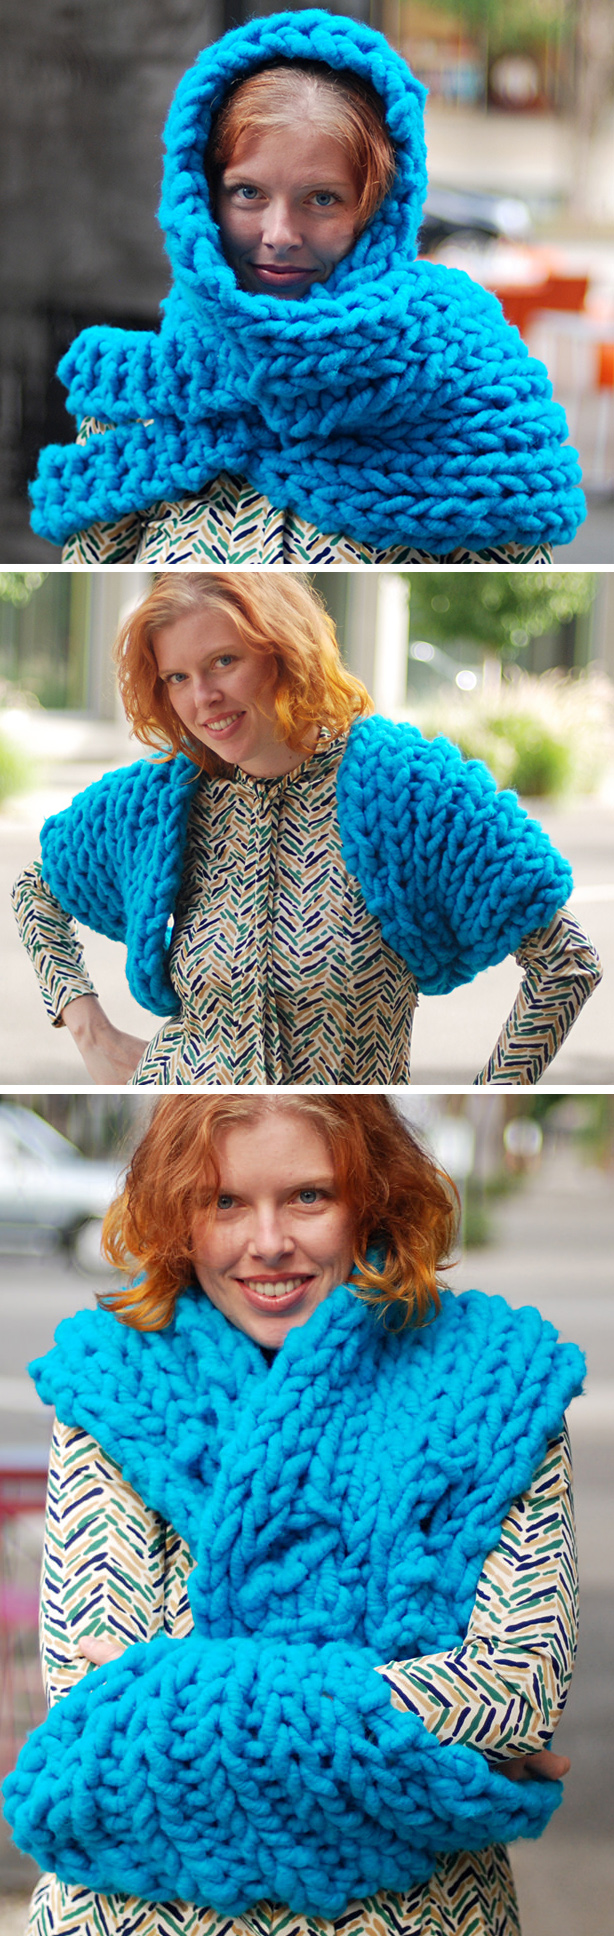 Free Knitting Pattern for Superduper Cowl